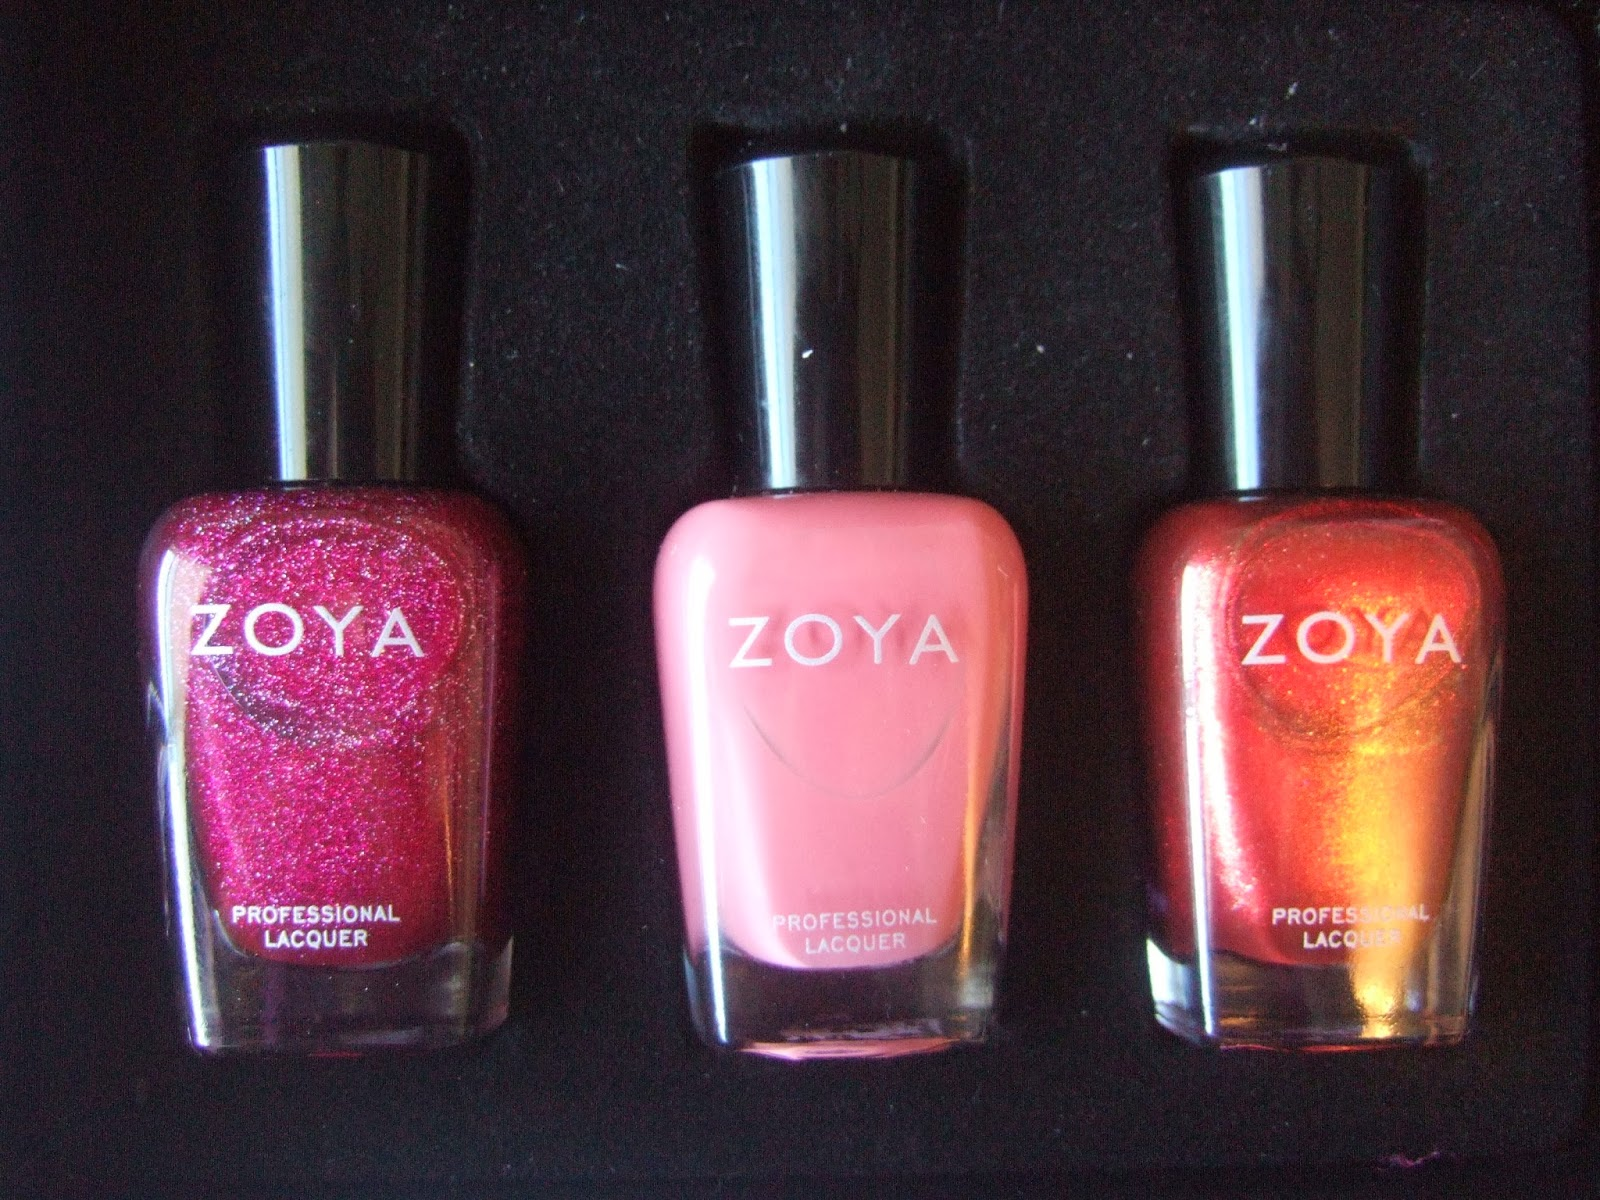 Zoya Haul with swatches